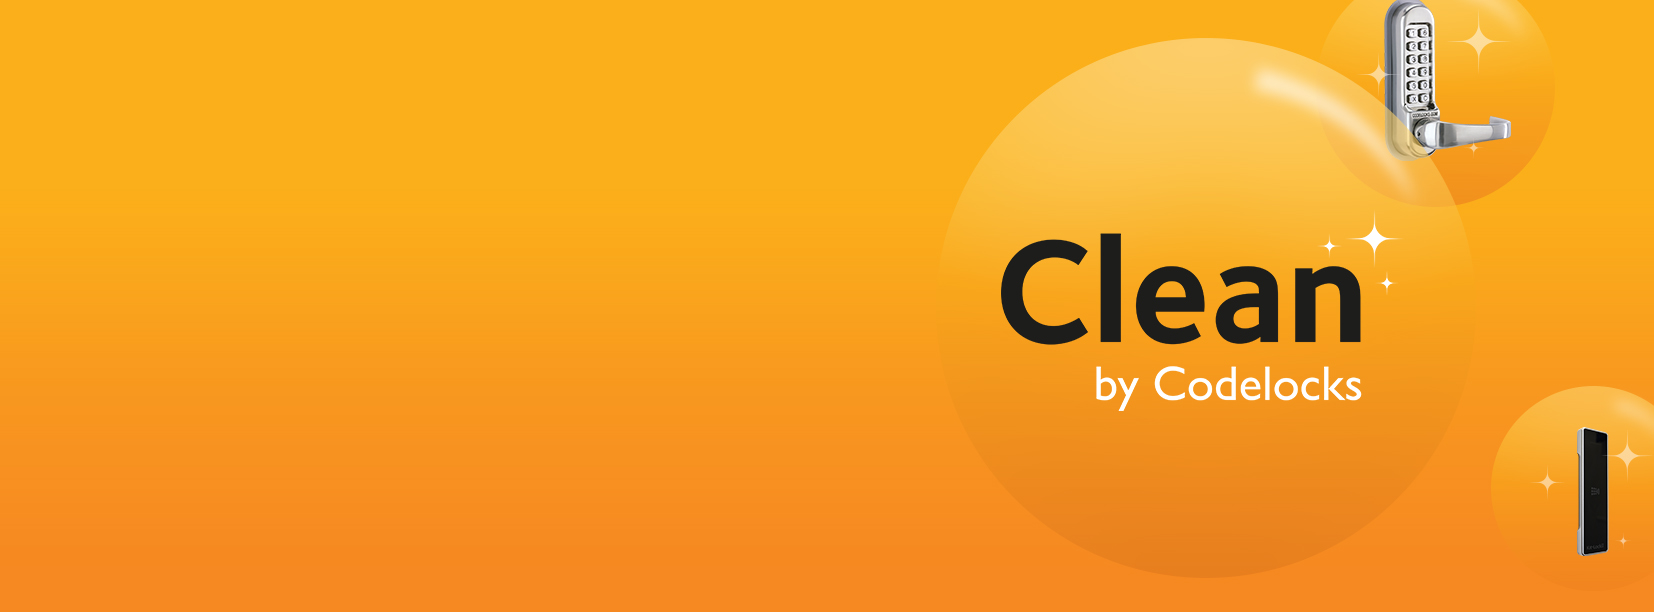 Clean by Codelocks Launch Banner 1120